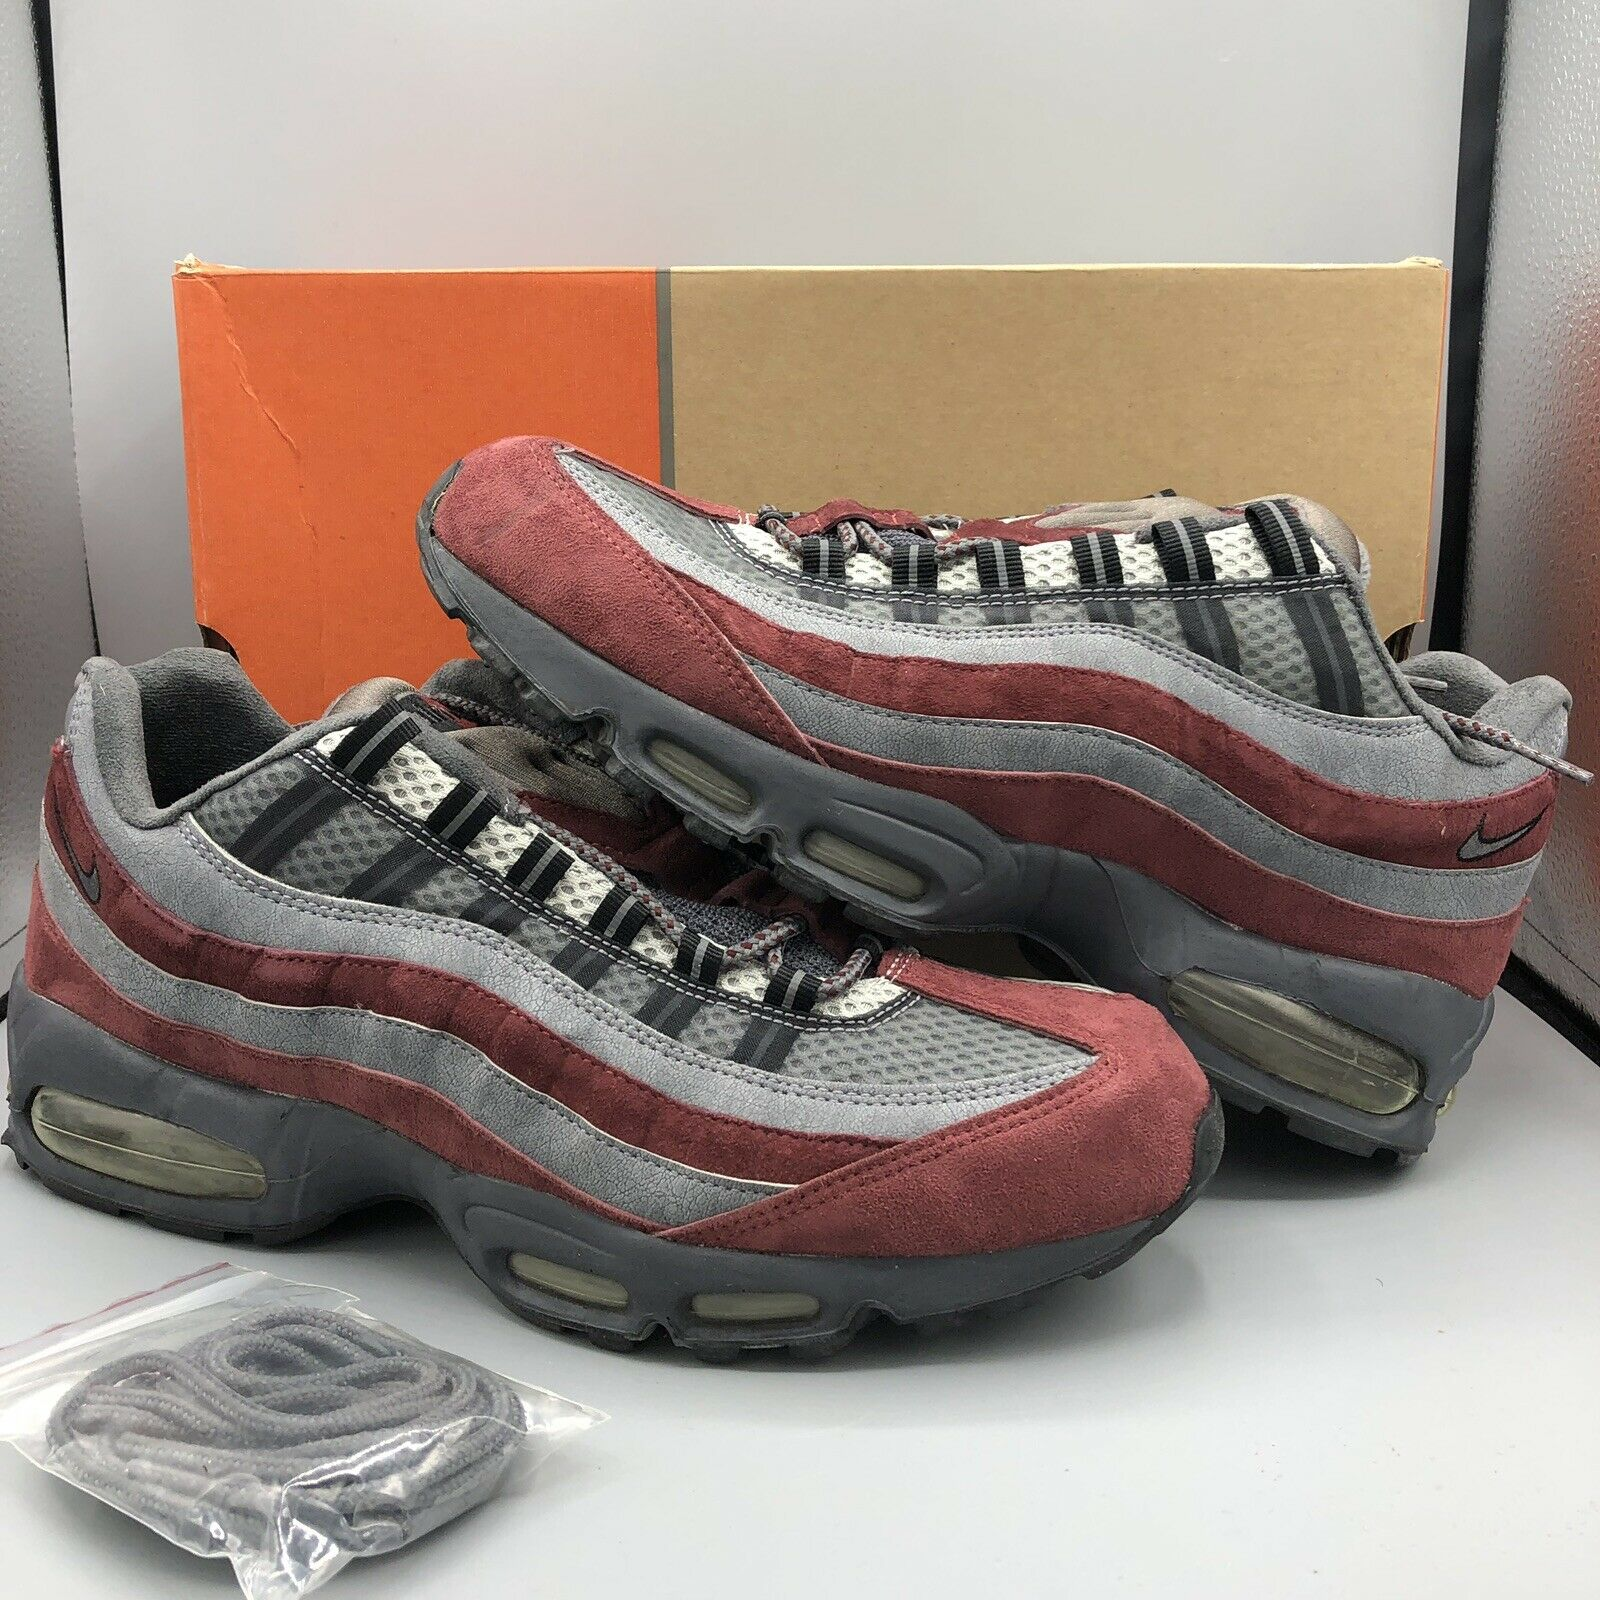 04 NIKE AIR MAX 95 PREMIUM GRAPHITE GREY REDWOOD RED 309785-061 ATMOS OG 90 12.5